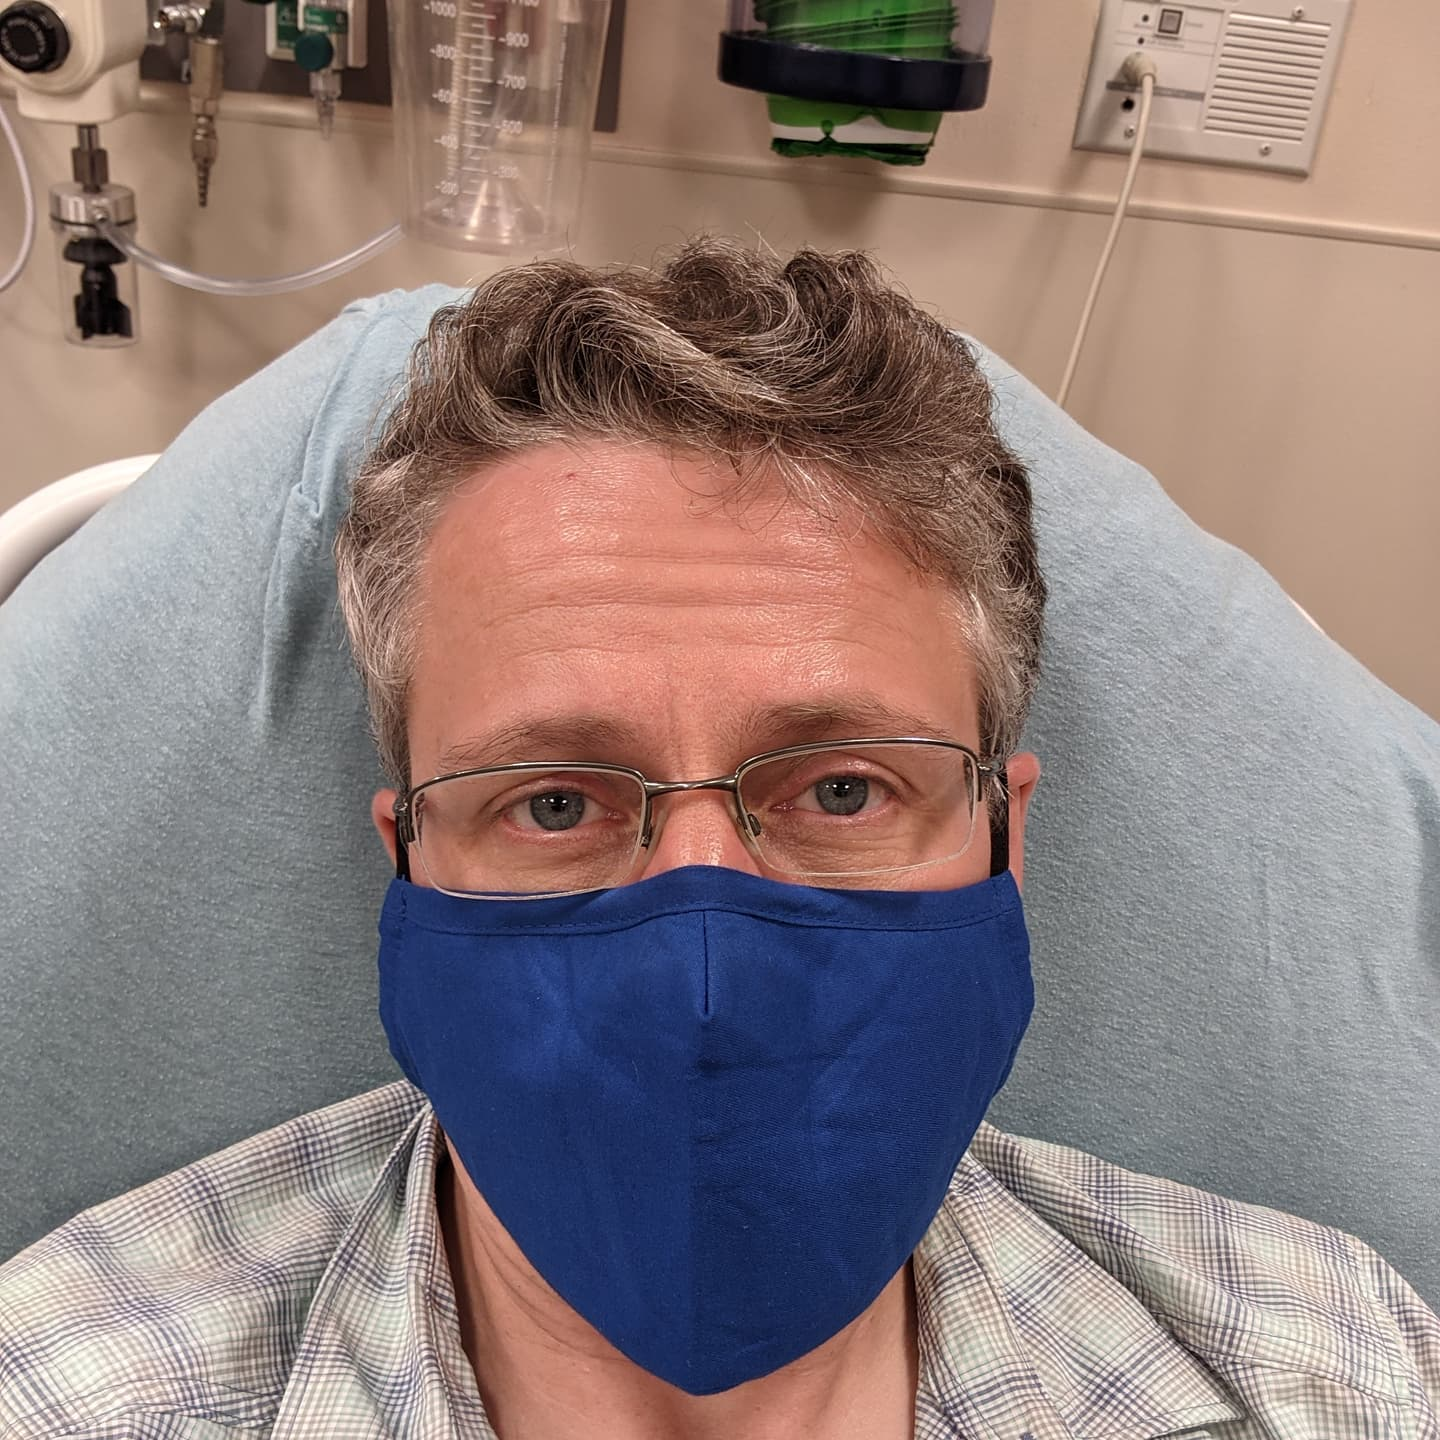 I'm all about new experiences but a night in an emergency room in Oklahoma wasn't high on my list. I've had a few hours sleep since then and now we get to find out why I ended up there.I'm ok, friends... But last night was extremely rough... Negative for a heart attack but I was showing a lot of symptoms.Kudos to the staff at Saint Anthony's who were amazing. Next week we start figuring out the why.